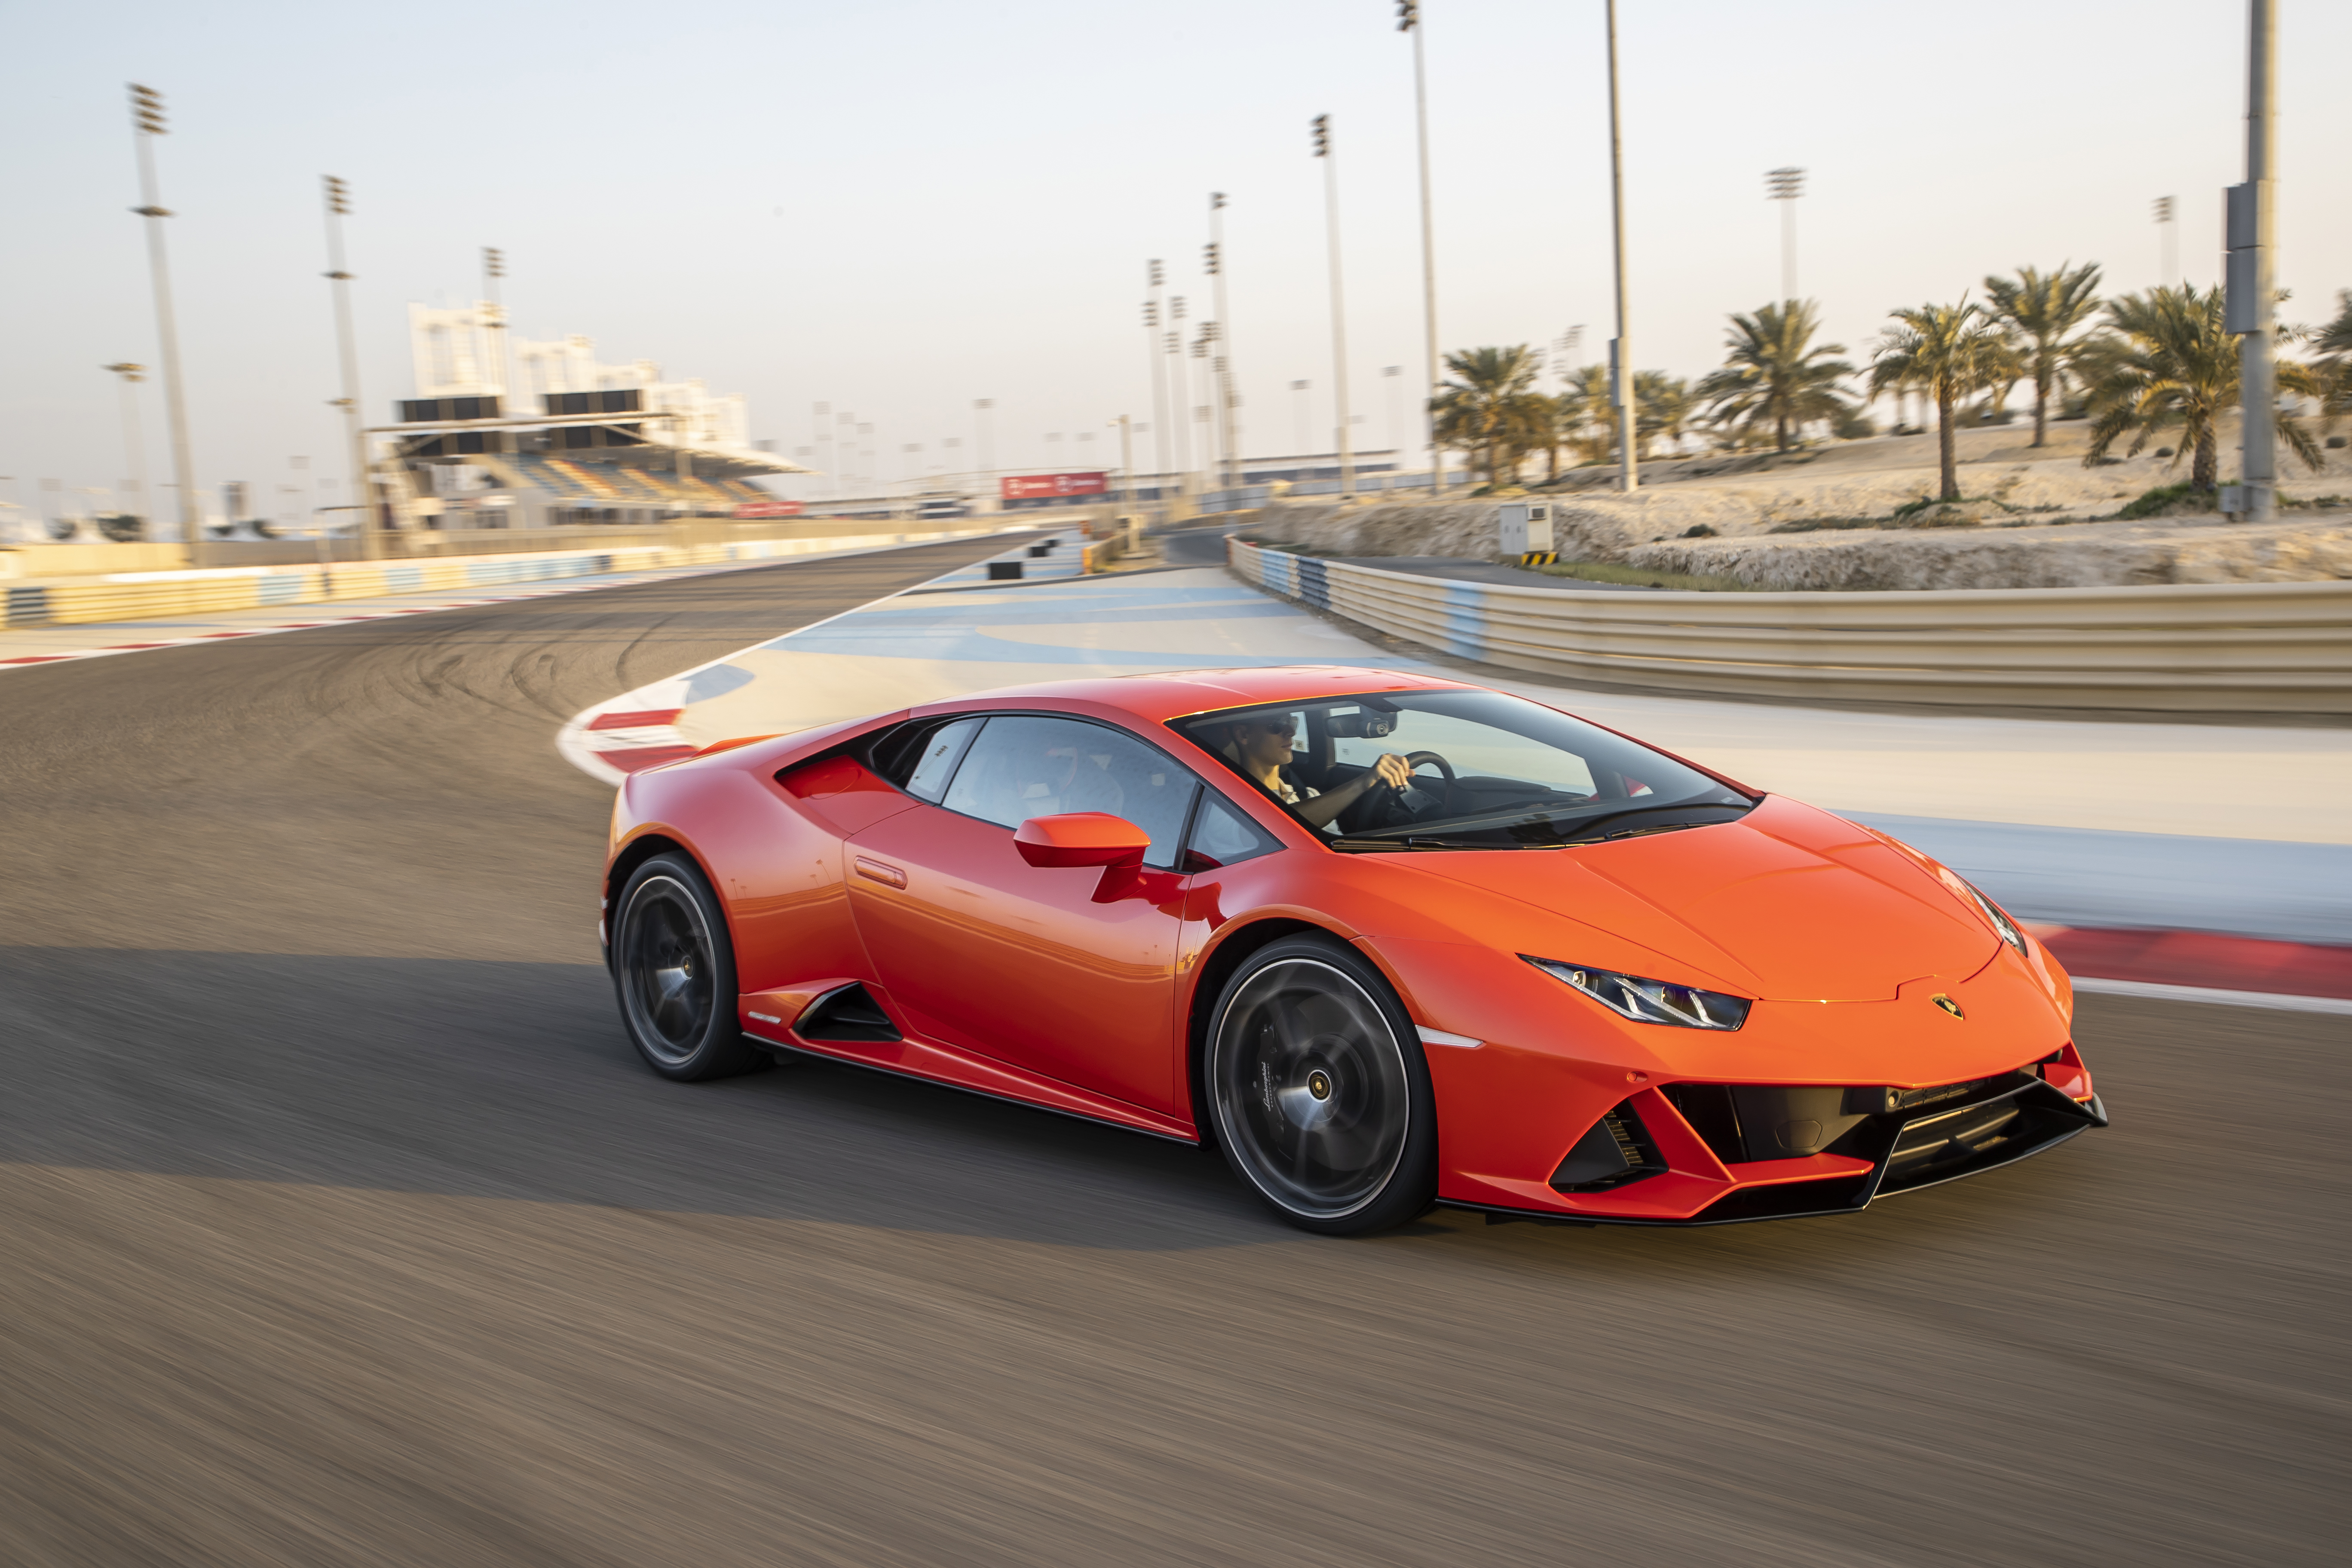 Lamborghini Huracan Latest News Reviews Specifications Prices